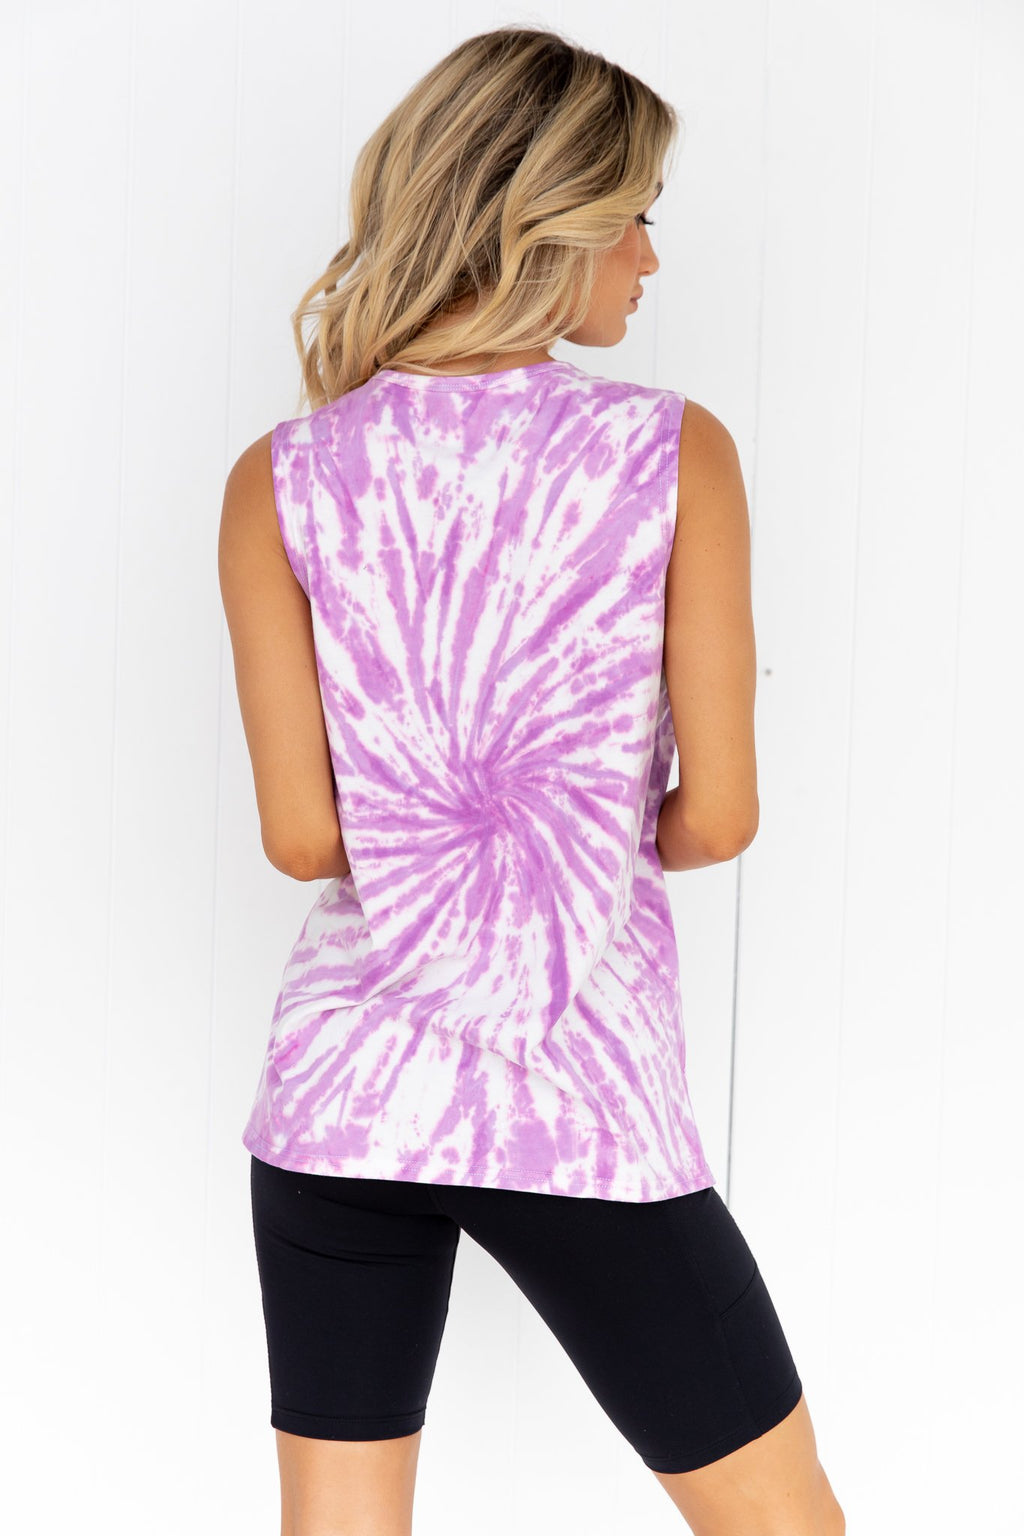 Running Bare Easy Rider Muscle Tank - Mauve Tie Dye - back